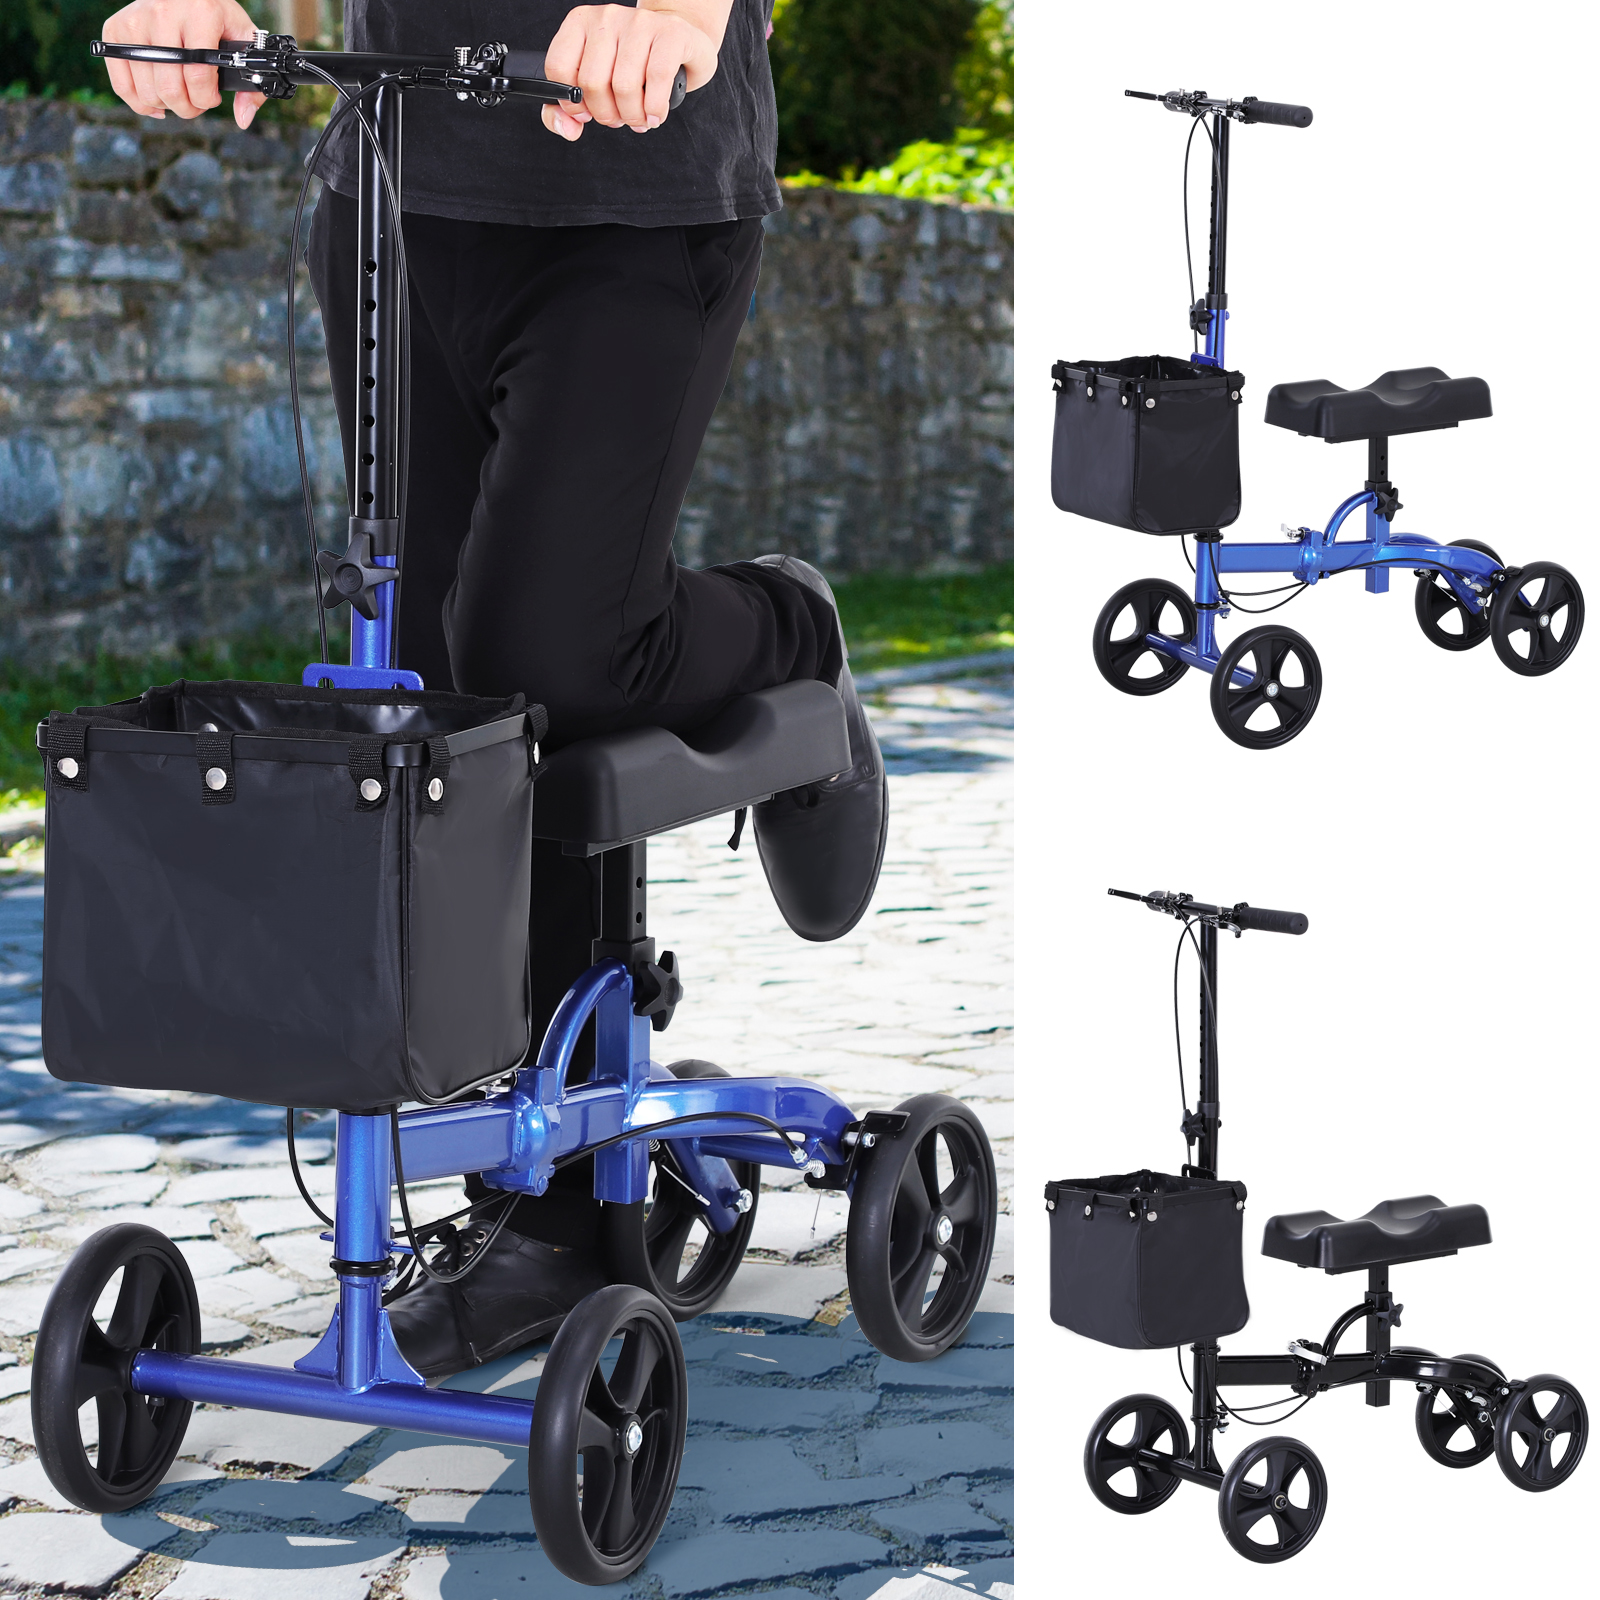 Magnificent Details About Medical Knee Walker Adjustable Height W Basket Pu Seat Rollator Bralicious Painted Fabric Chair Ideas Braliciousco